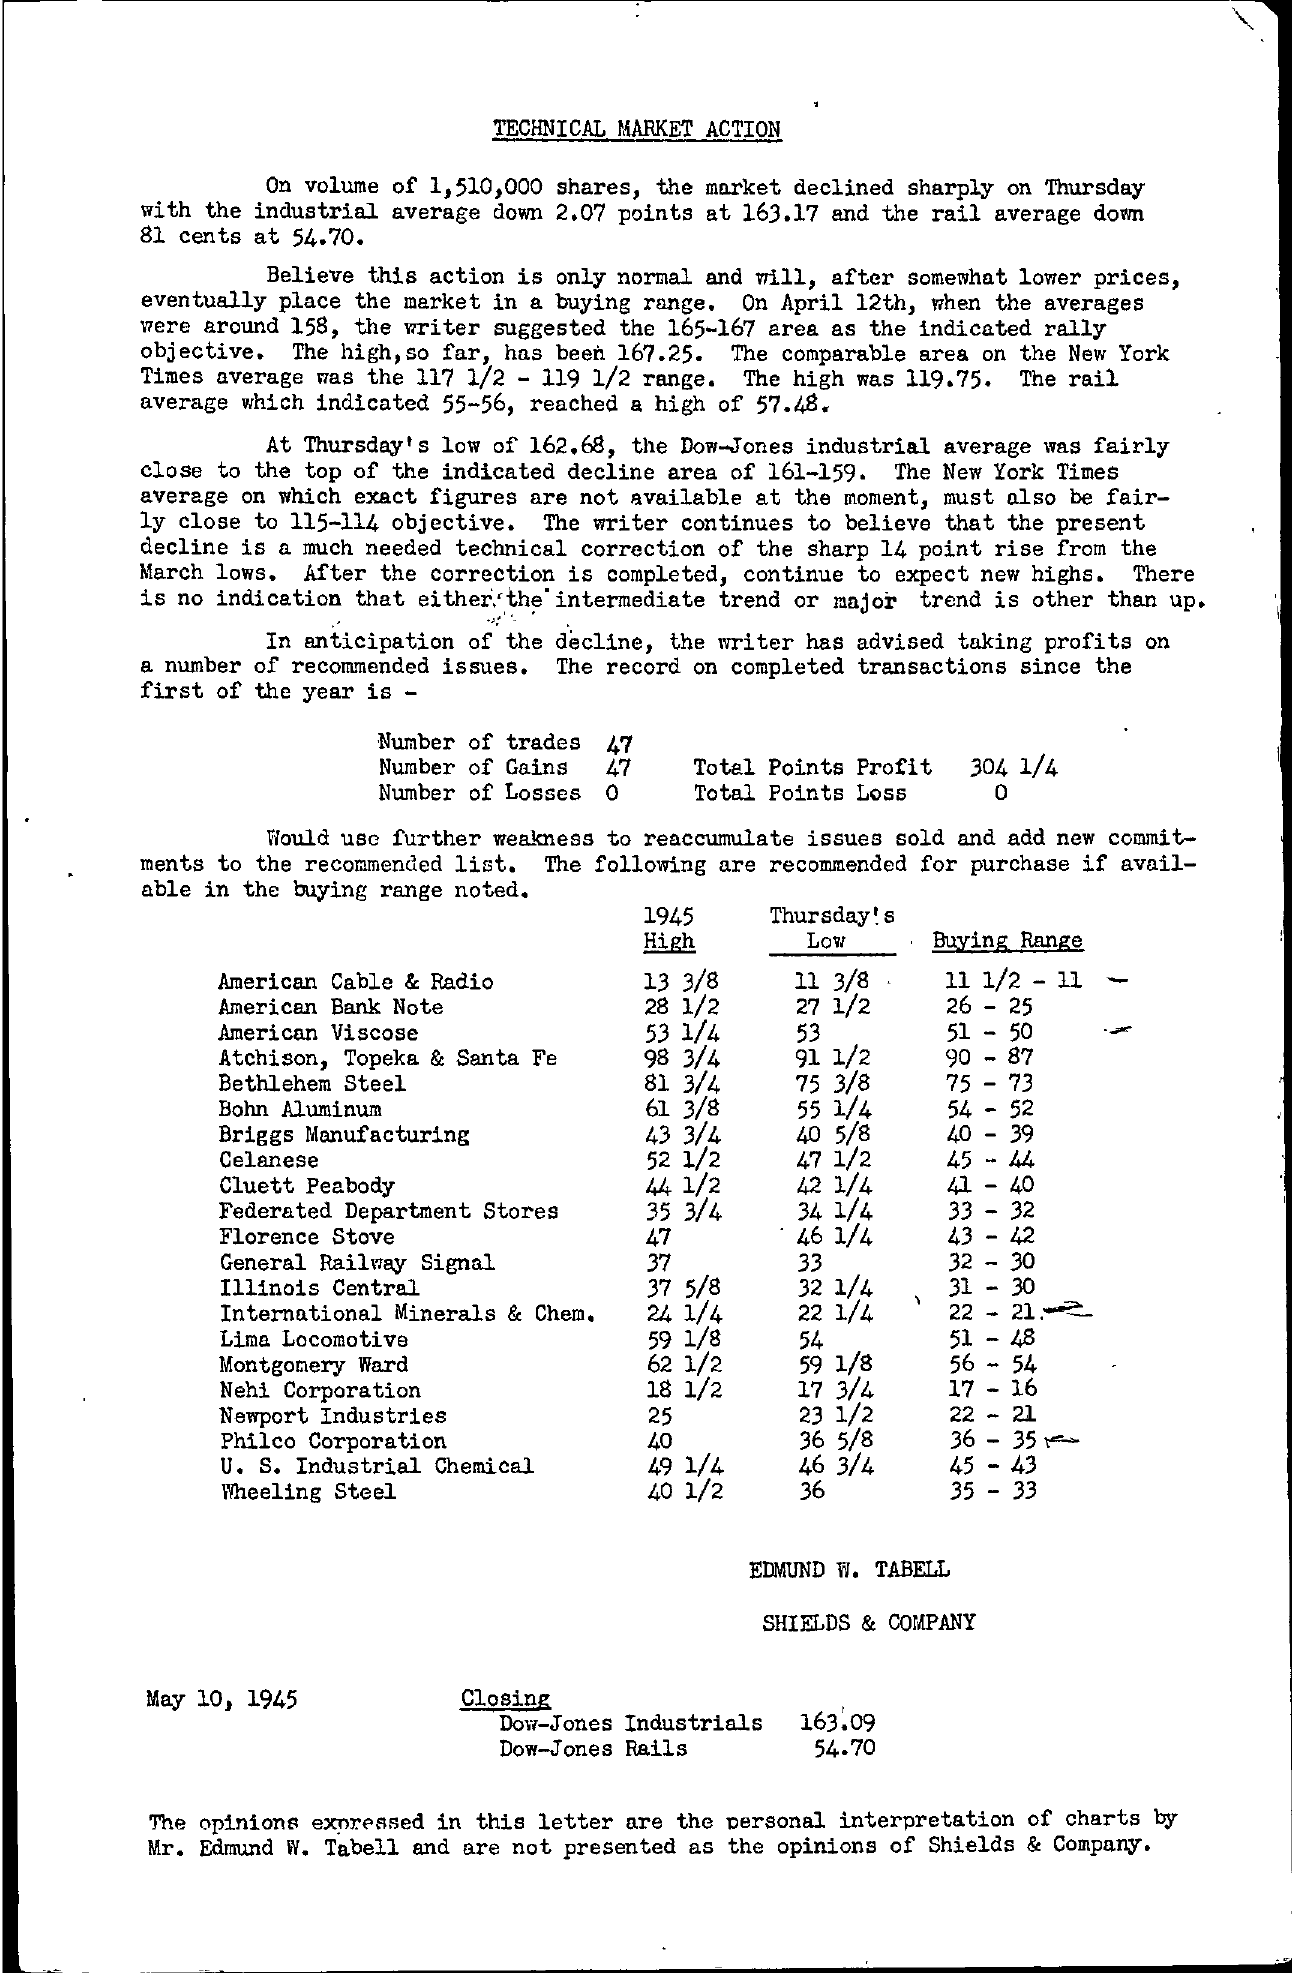 Tabell's Market Letter - May 10, 1945